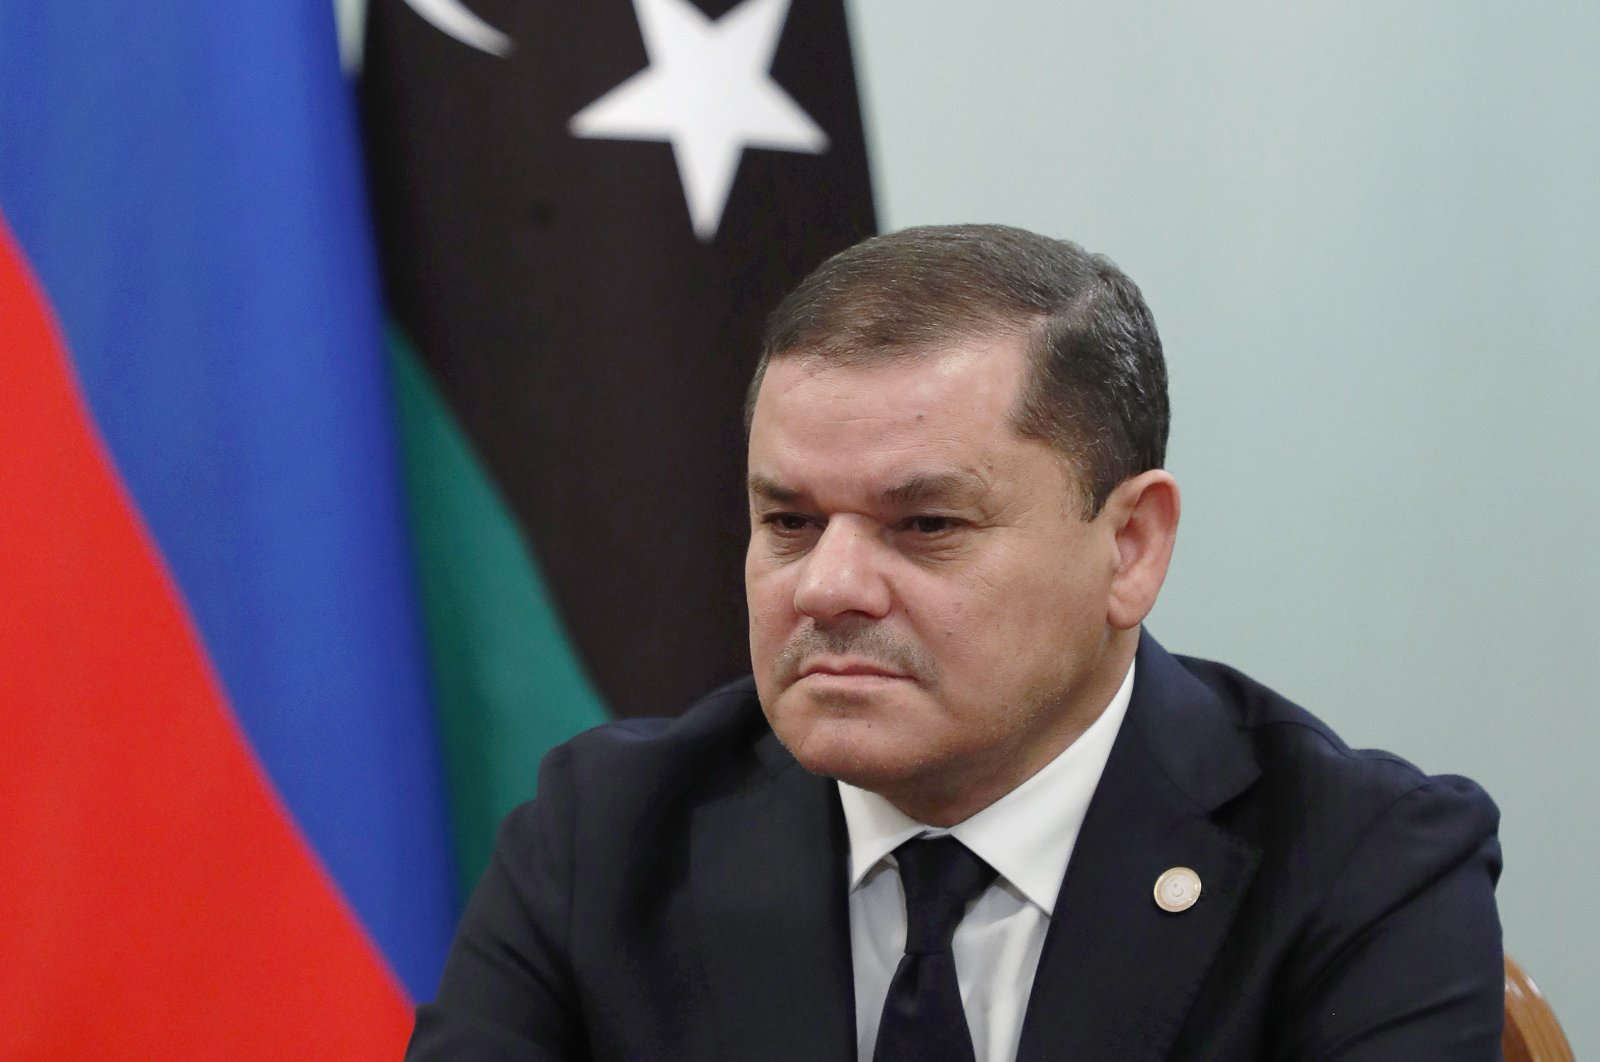 Prime Minister of the Libyan Government of National Unity Abdul Hamid Mohammed Dbeibah takes part in a meeting with Russia's Prime Minister Mikhail Mishustin (not pictured) at the House of the Government of the Russian Federation in Moscow, Russia, April 15, 2021  (Getty Images)